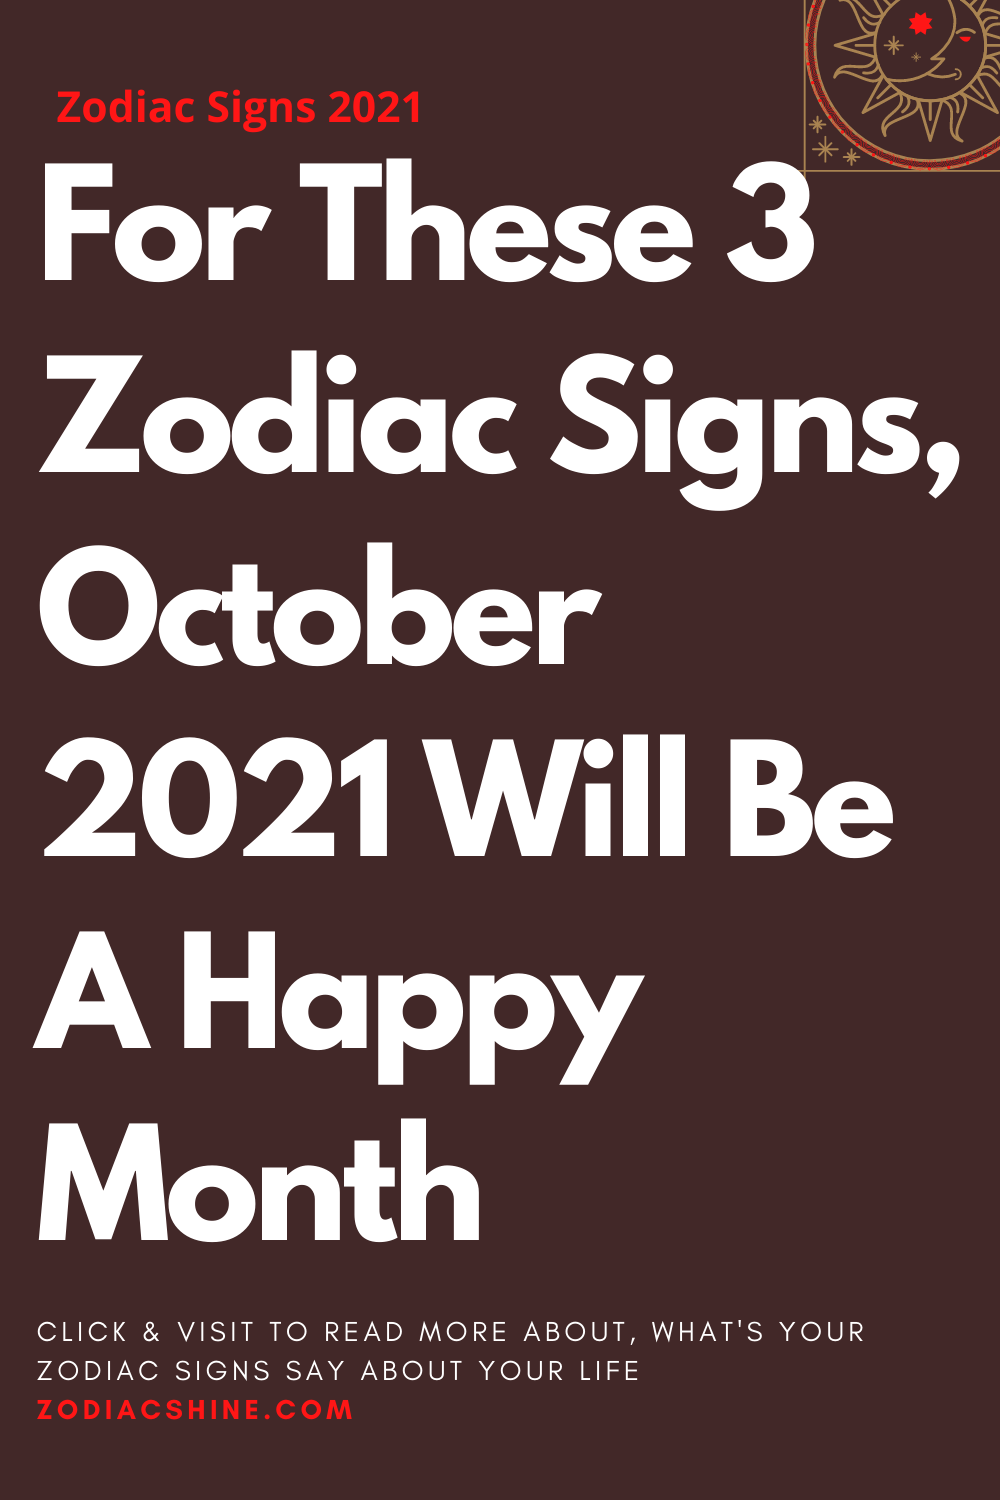 For These 3 Zodiac Signs October 2021 Will Be A Happy Month